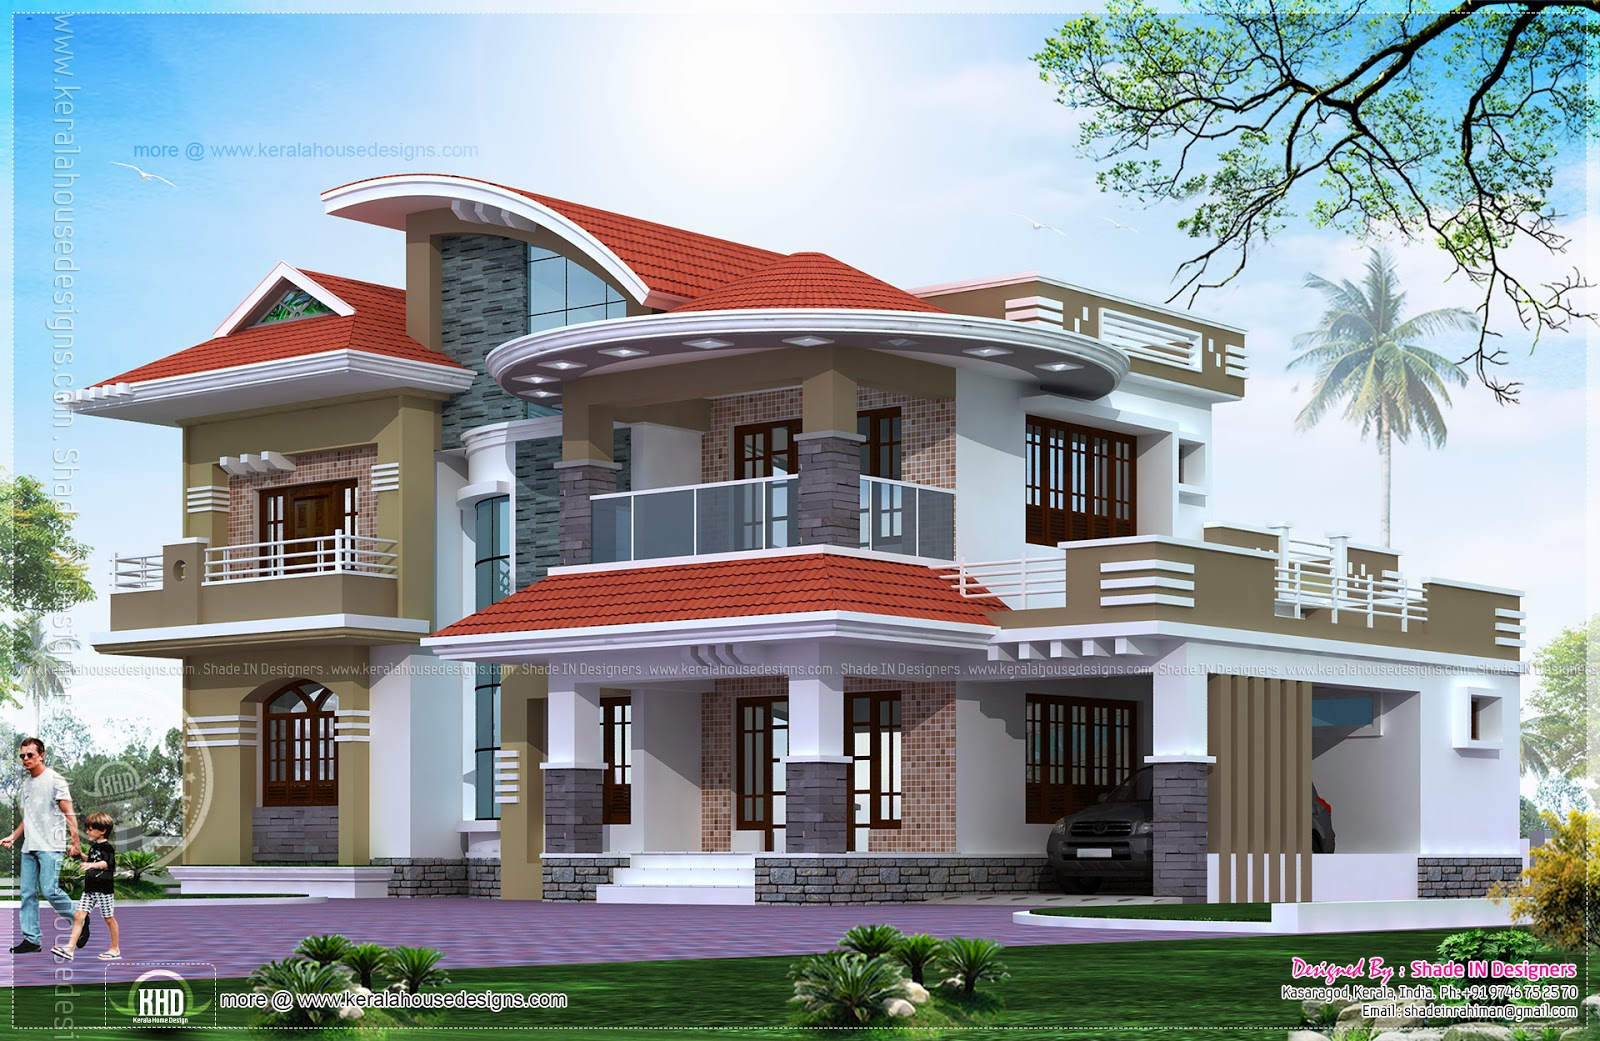 5 bedroom luxury house in kasaragod kerala home design for Luxury home models